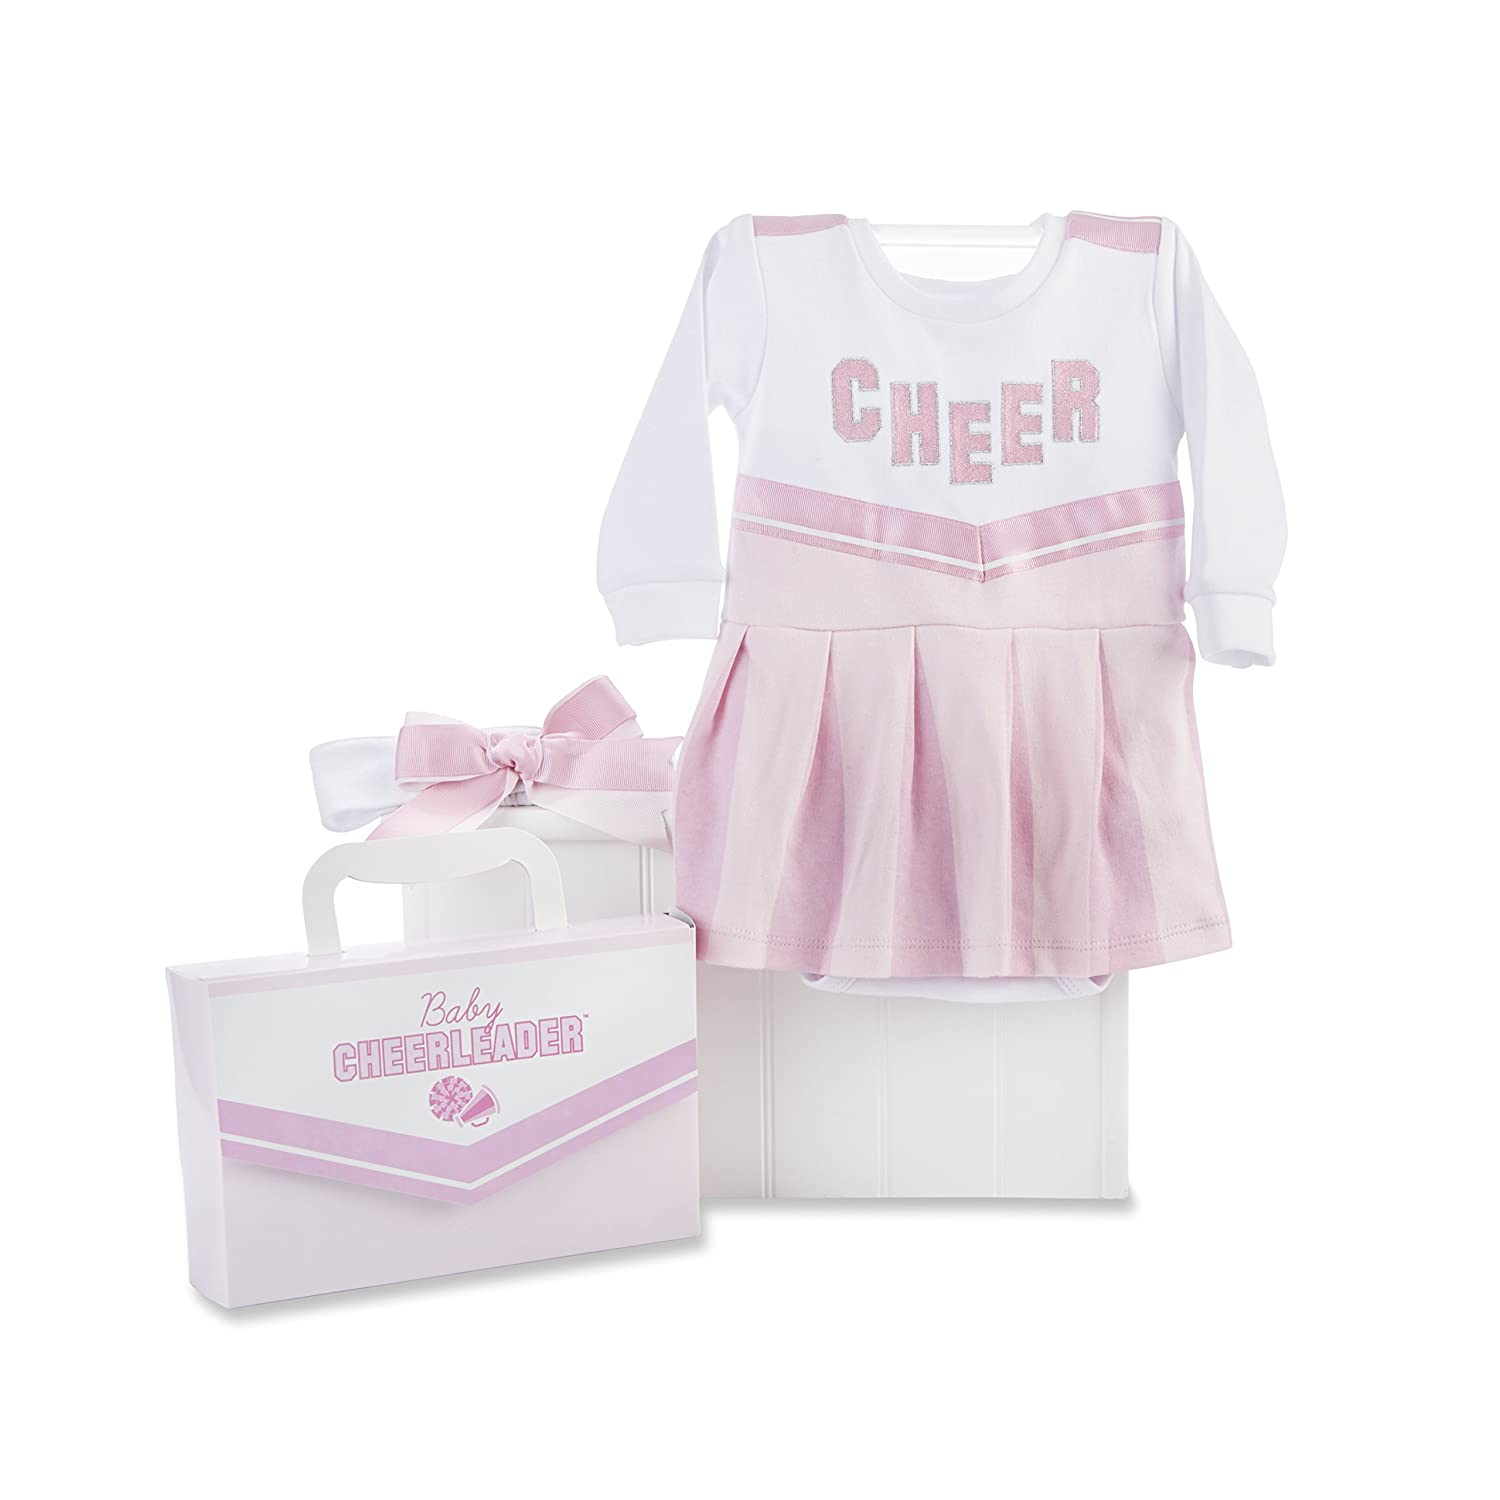 Baby Aspen Big Dreamzzz Baby Cheerleader Two-Piece Layette Set, Pink/White, 0-6 Months BA16010CL